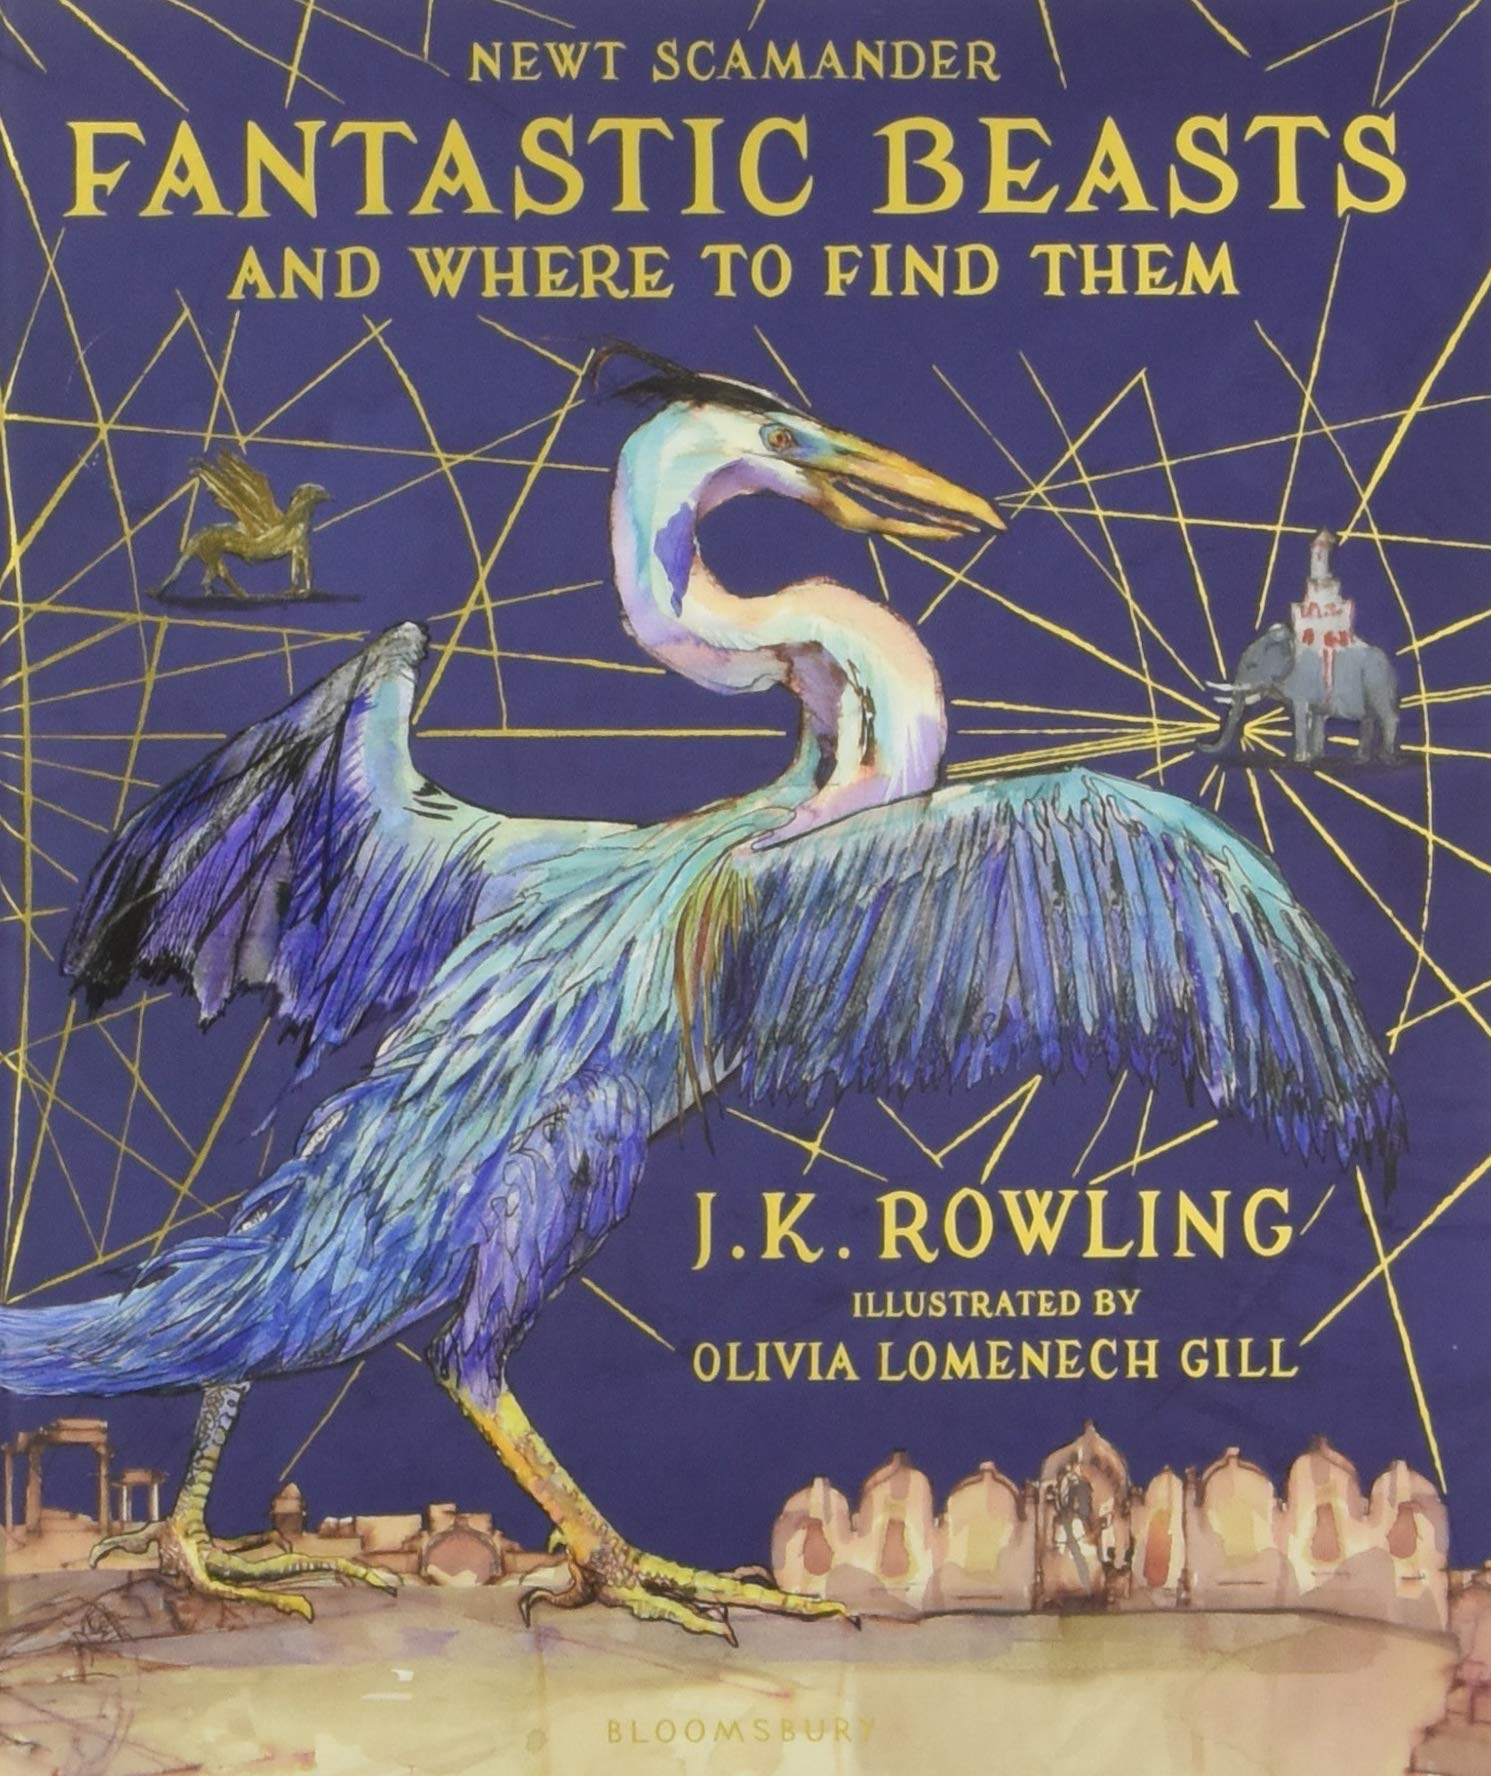 Image result for fantastic beasts illustrated limited edition book cover